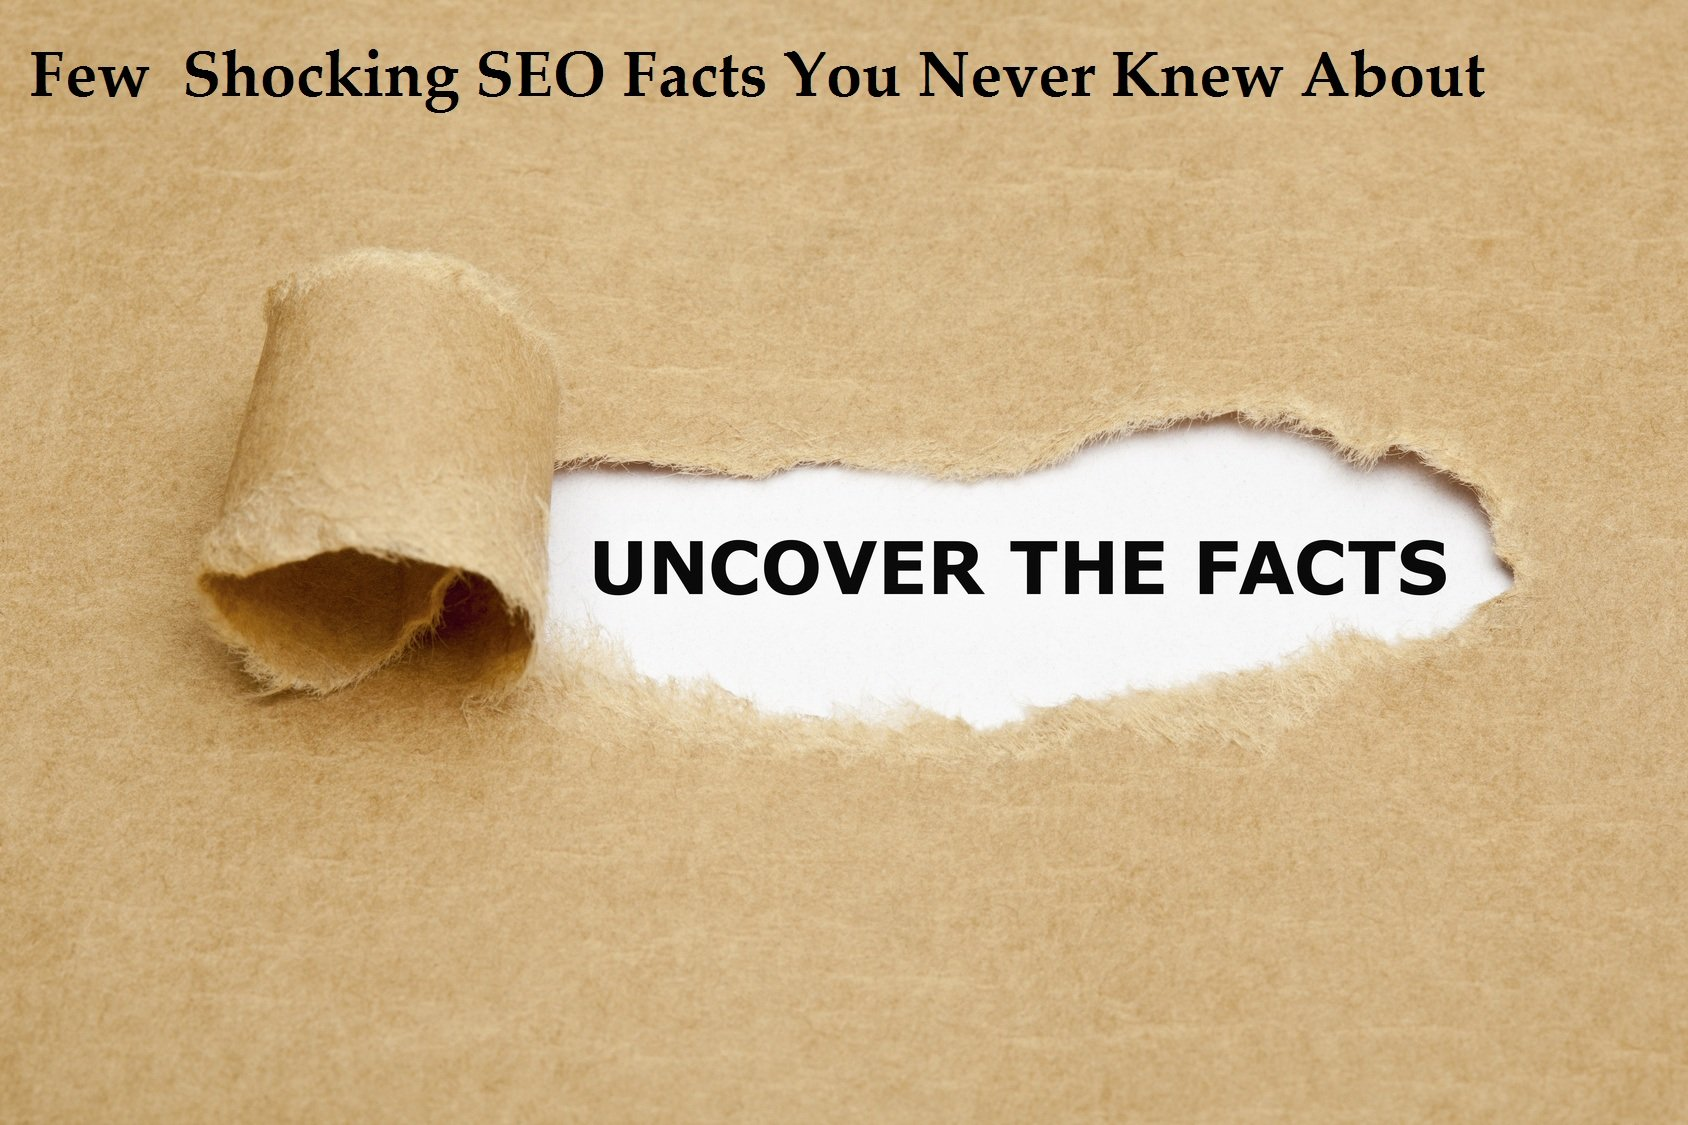 Few Shocking SEO Facts You Never Knew About | Grow Google Ranking